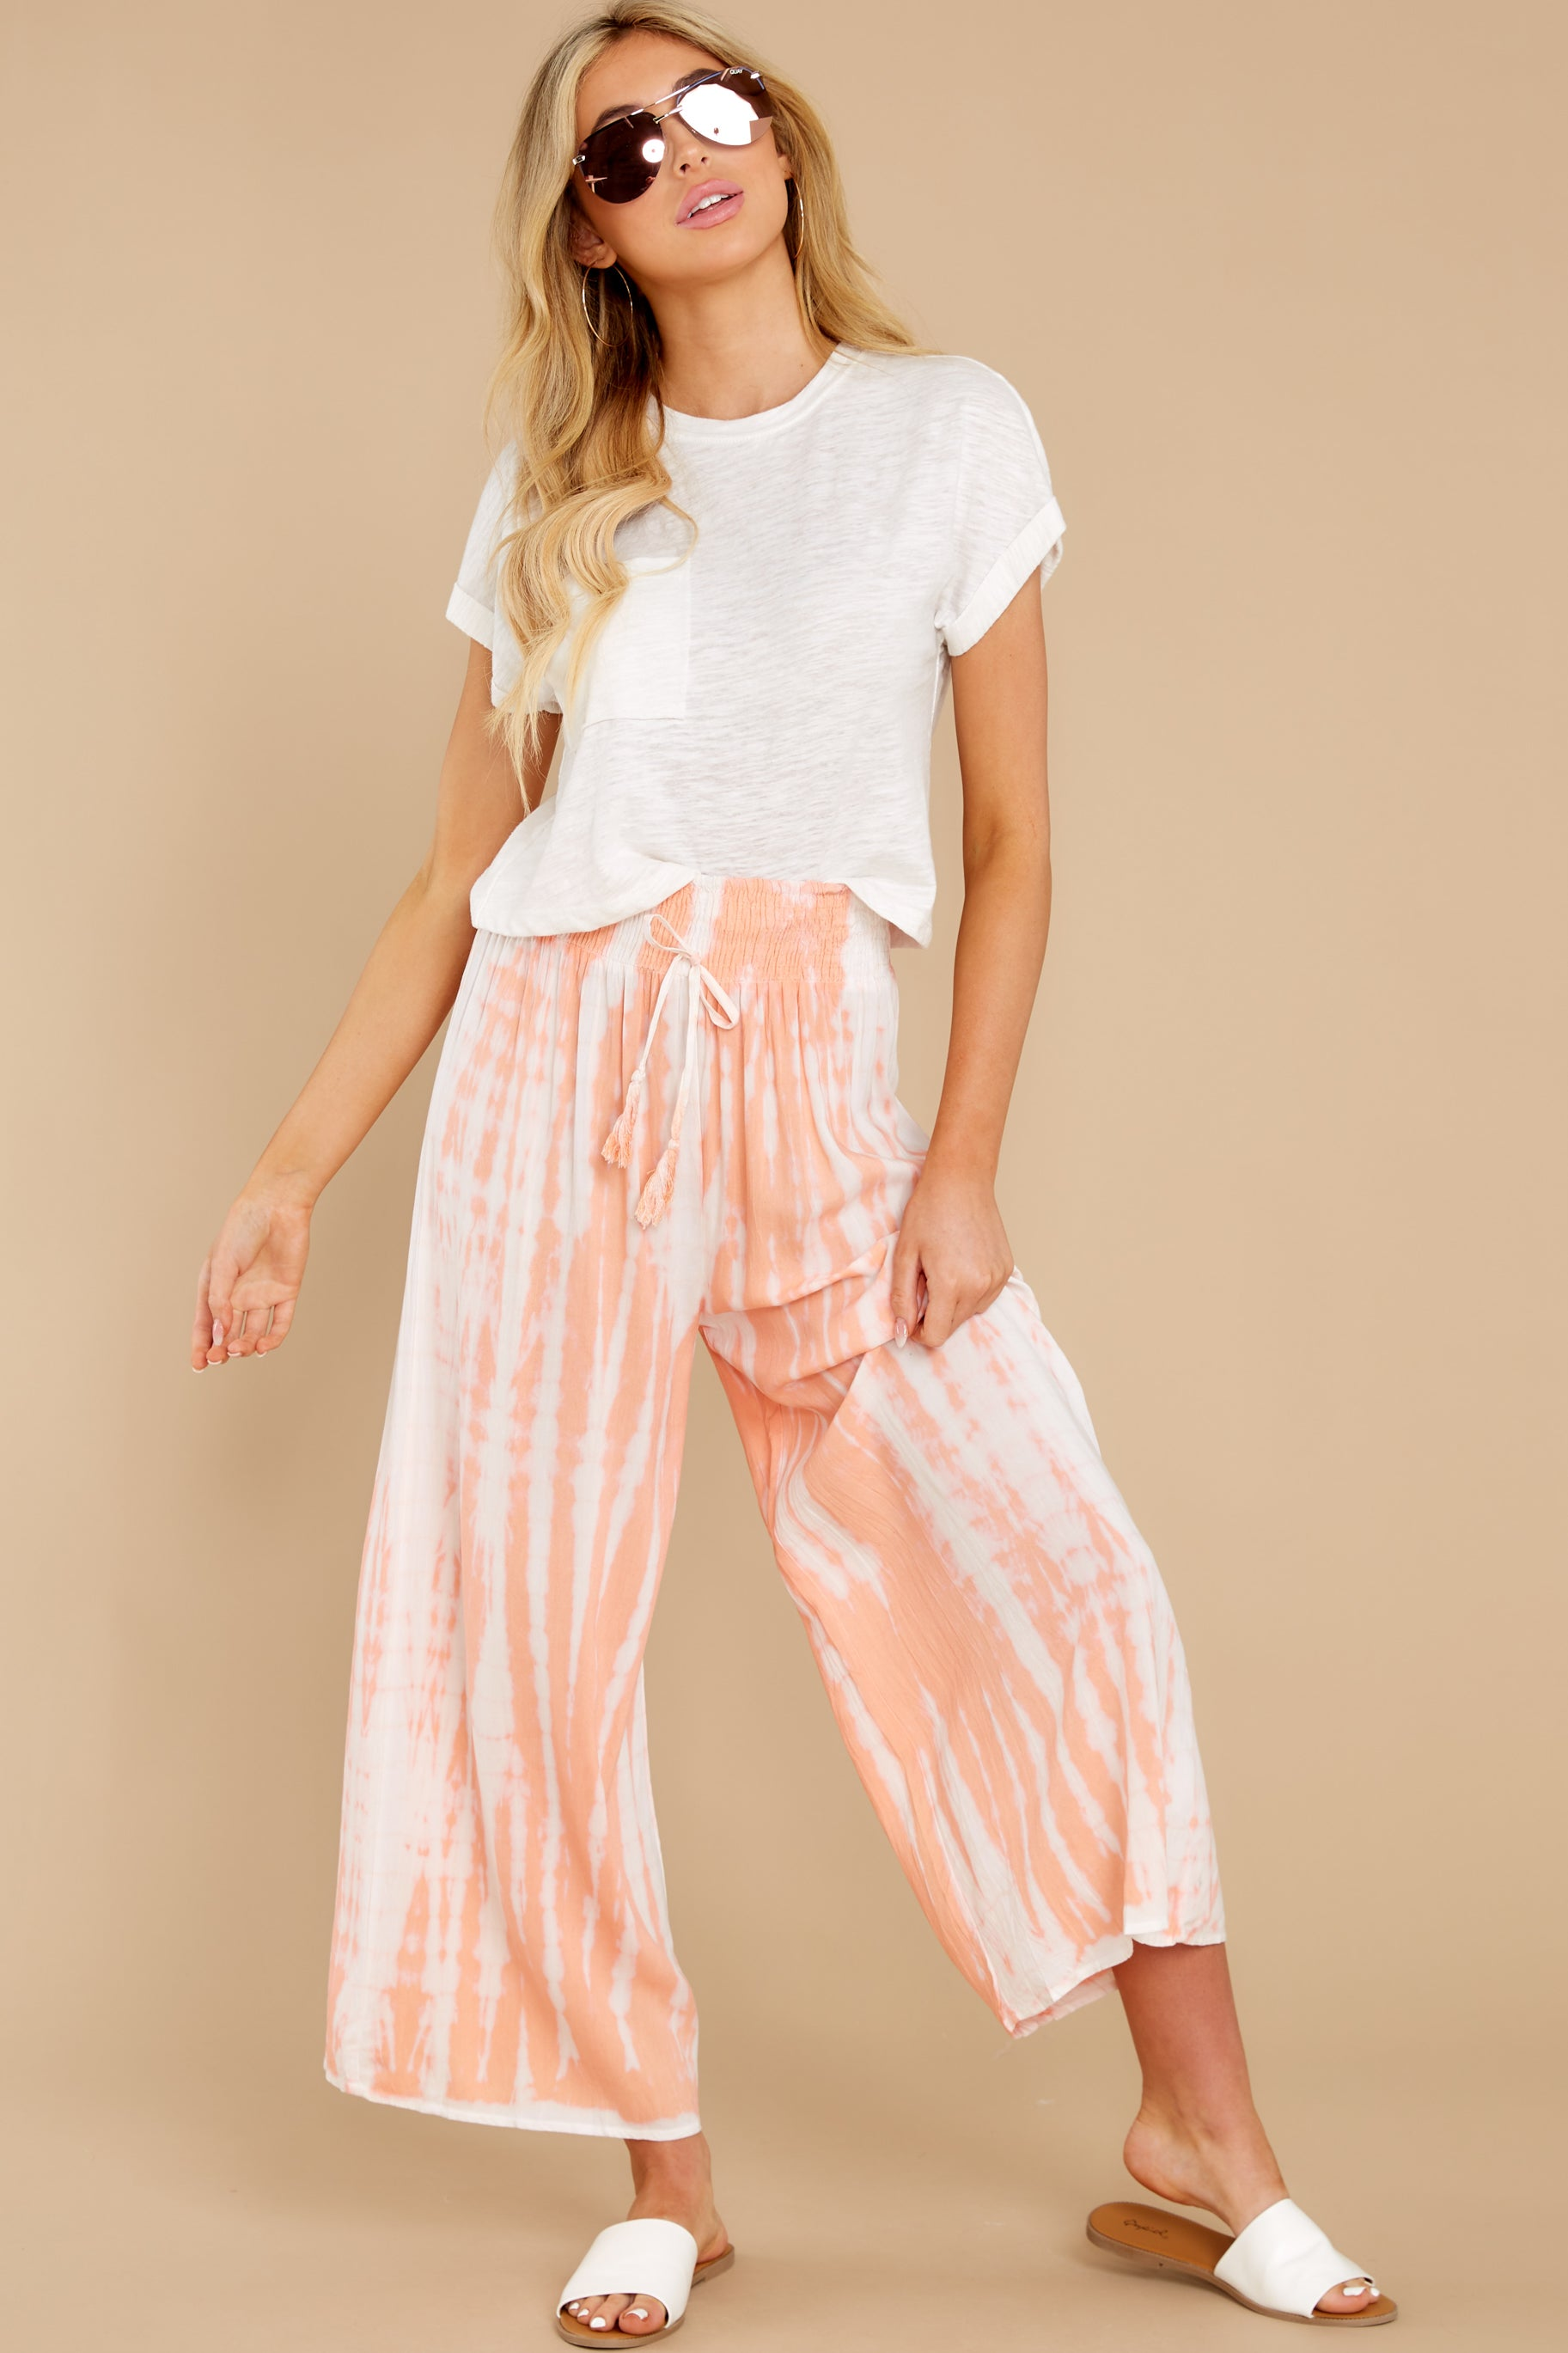 5 All Your Own Peach Tie Dye Pants at reddress.com